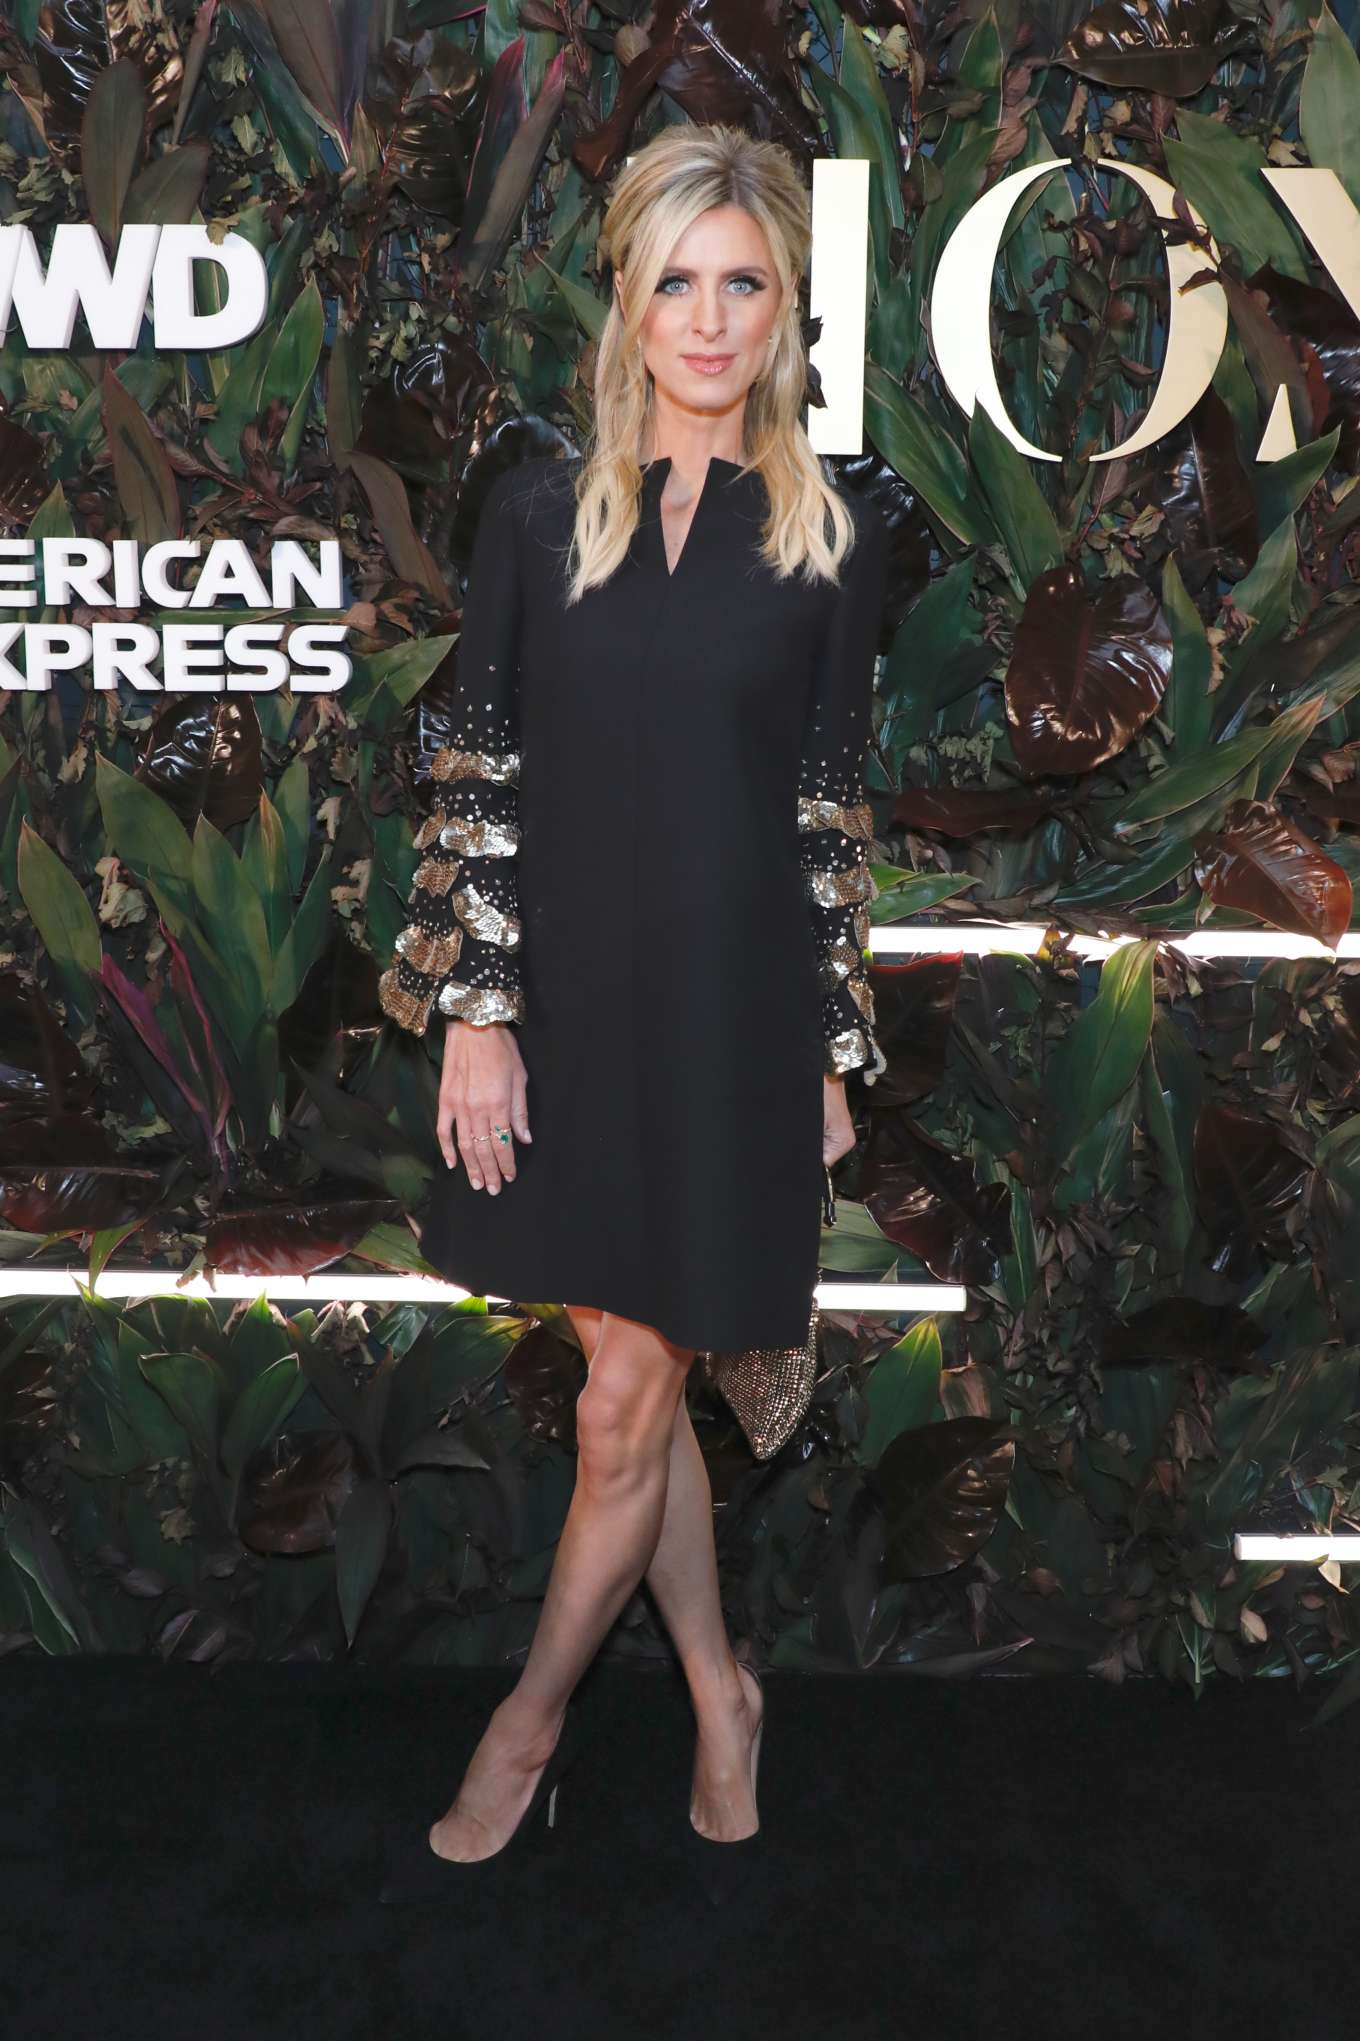 Nicky Hilton - 4th Annual WWD Honors in New York